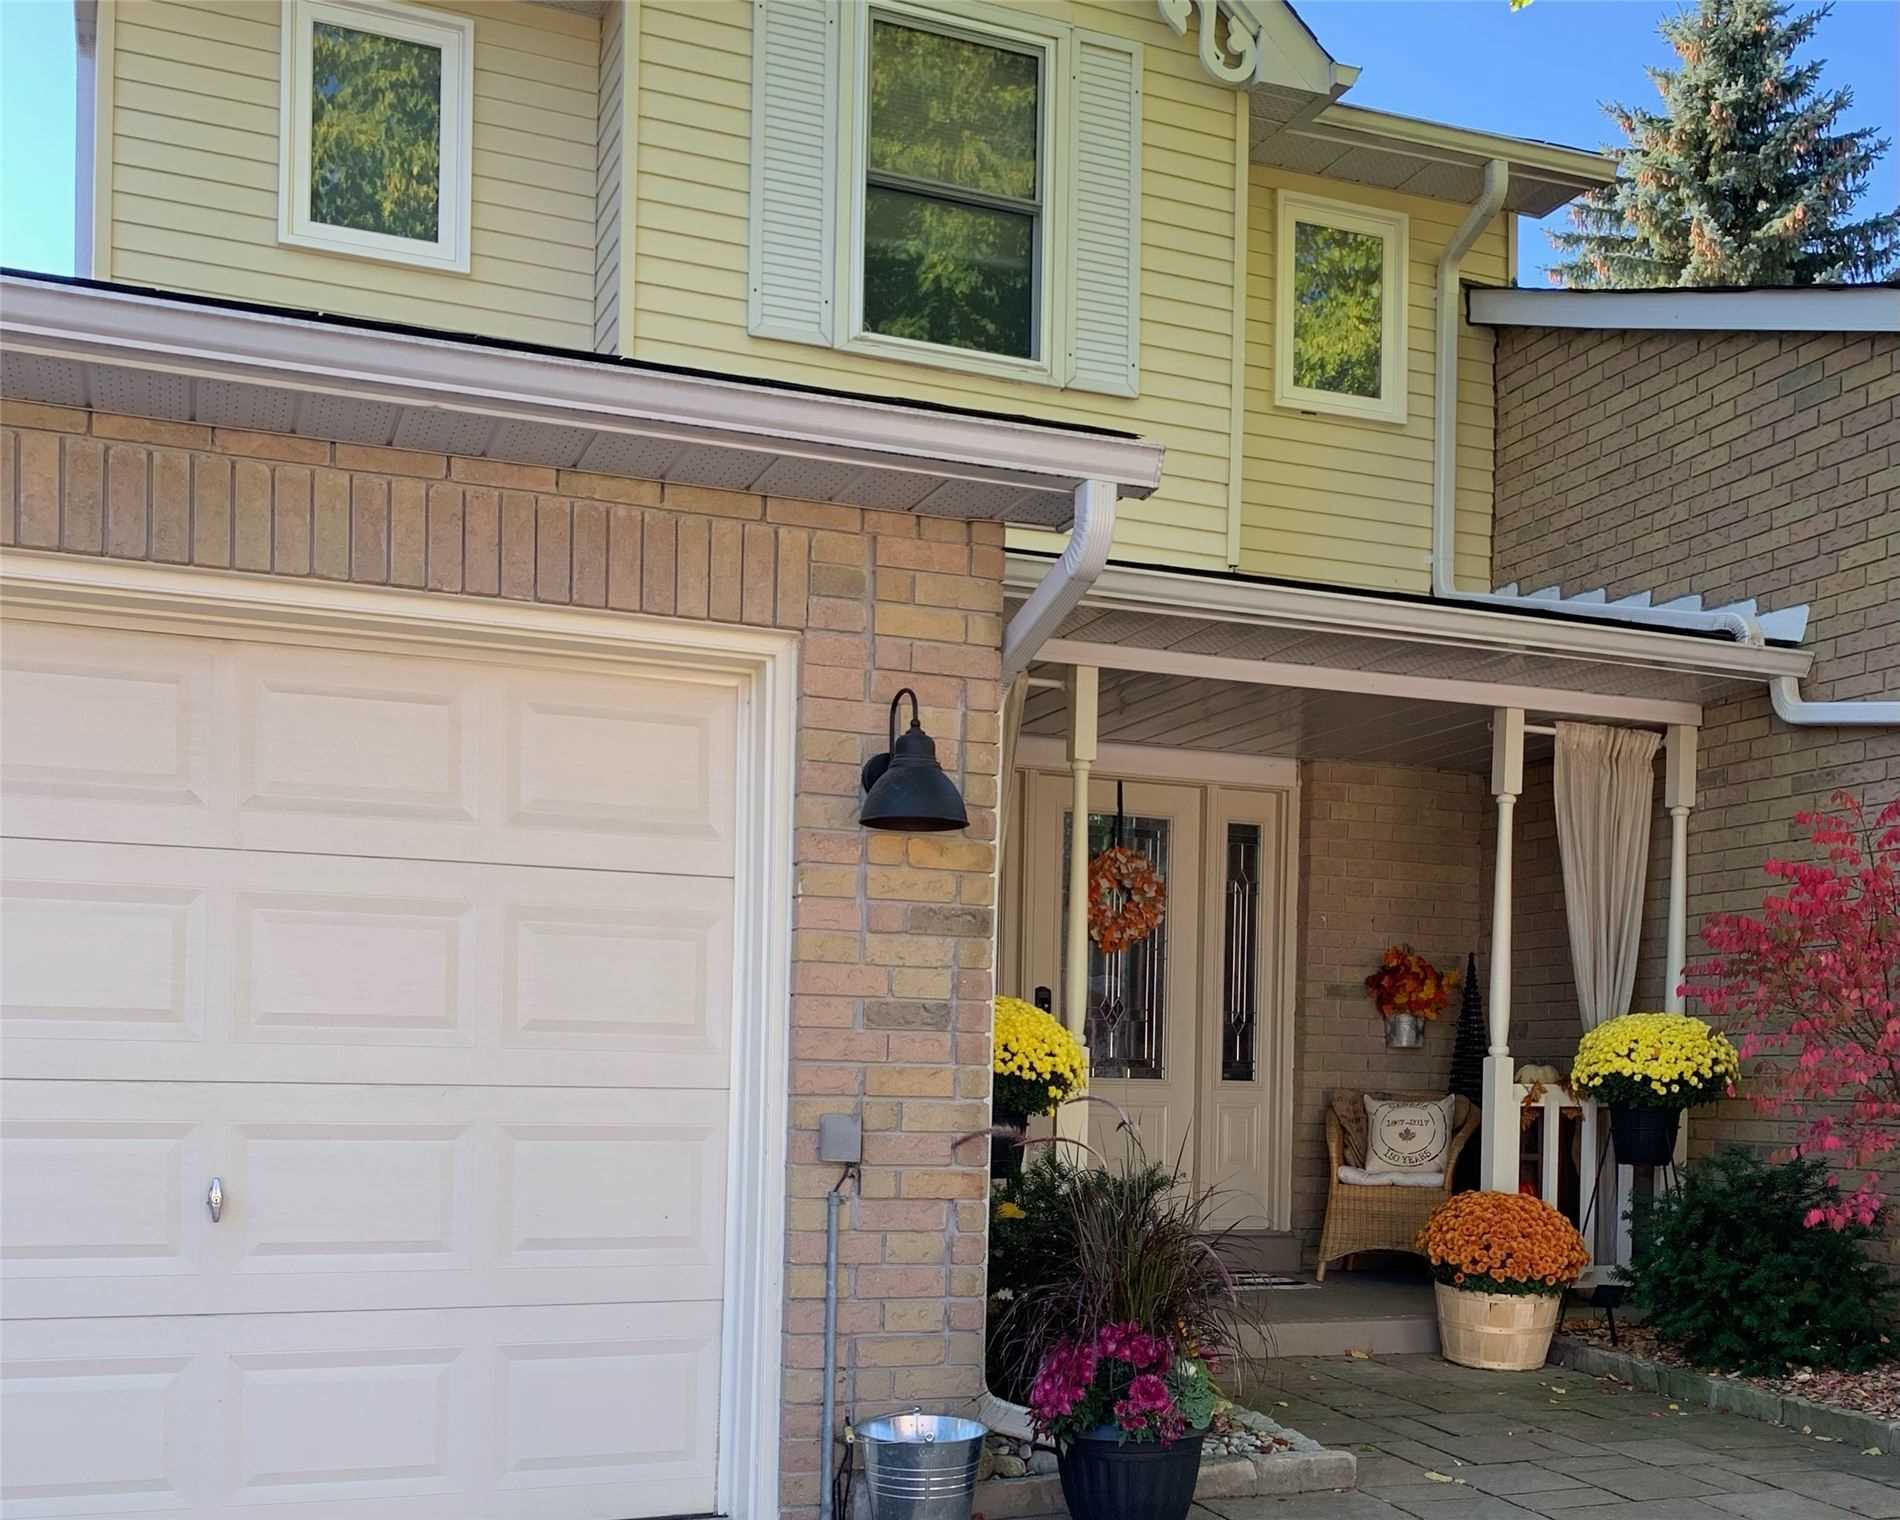 For Sale: 14 - 14 Adams Court, Uxbridge, ON | 3 Bed, 4 Bath Townhouse for $569900.00. See 23 photos!